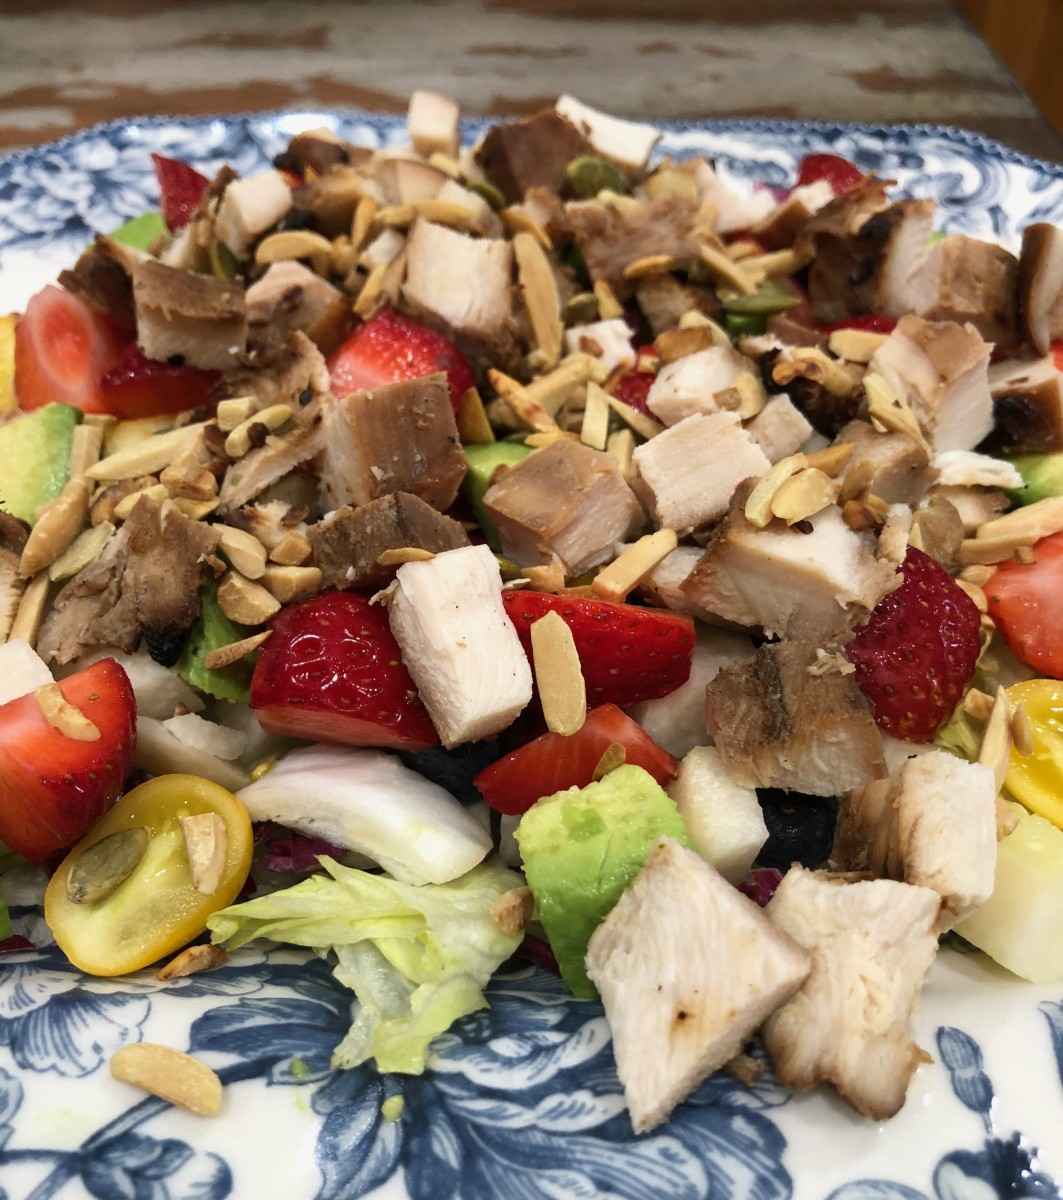 This is the same salad with grilled chicken and toasted almonds and pumpkin seeds on top.